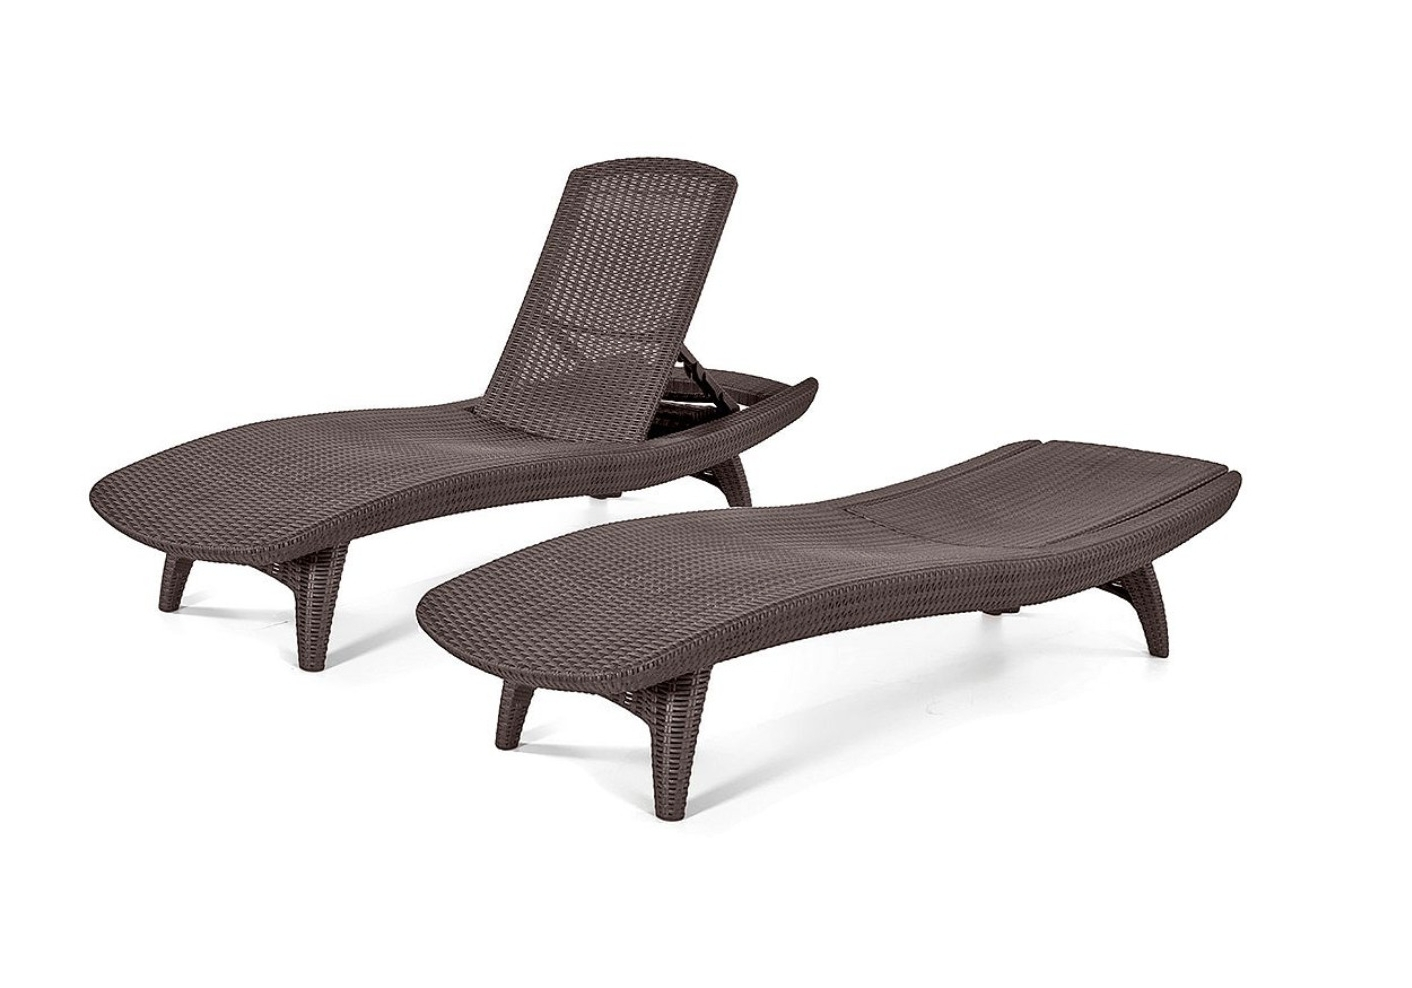 Well Known Keter Chaise Lounge Chairs Pertaining To 2 Chaise Keter Lounge Chairs Outdoor Brown Wicker Adjustable Back (View 15 of 15)